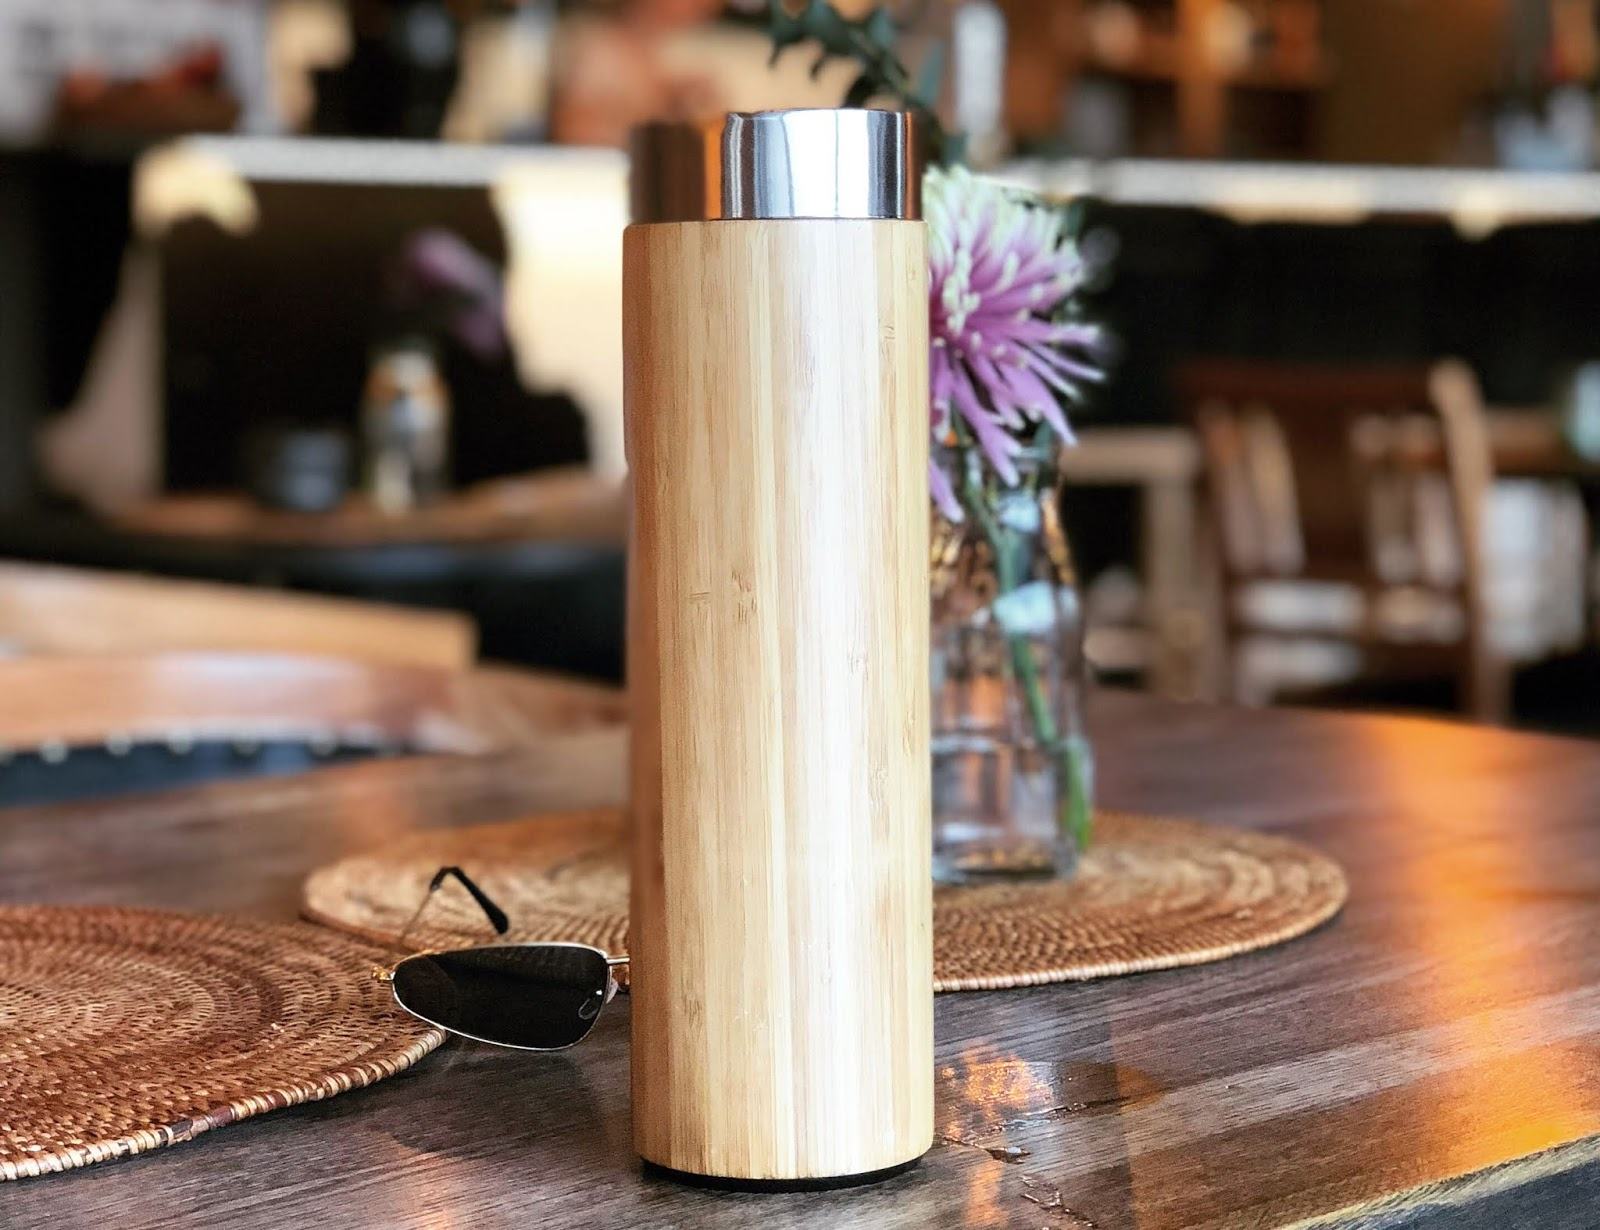 Reusable bamboo bottle for travel - sustainable travel guide - responsible traveler